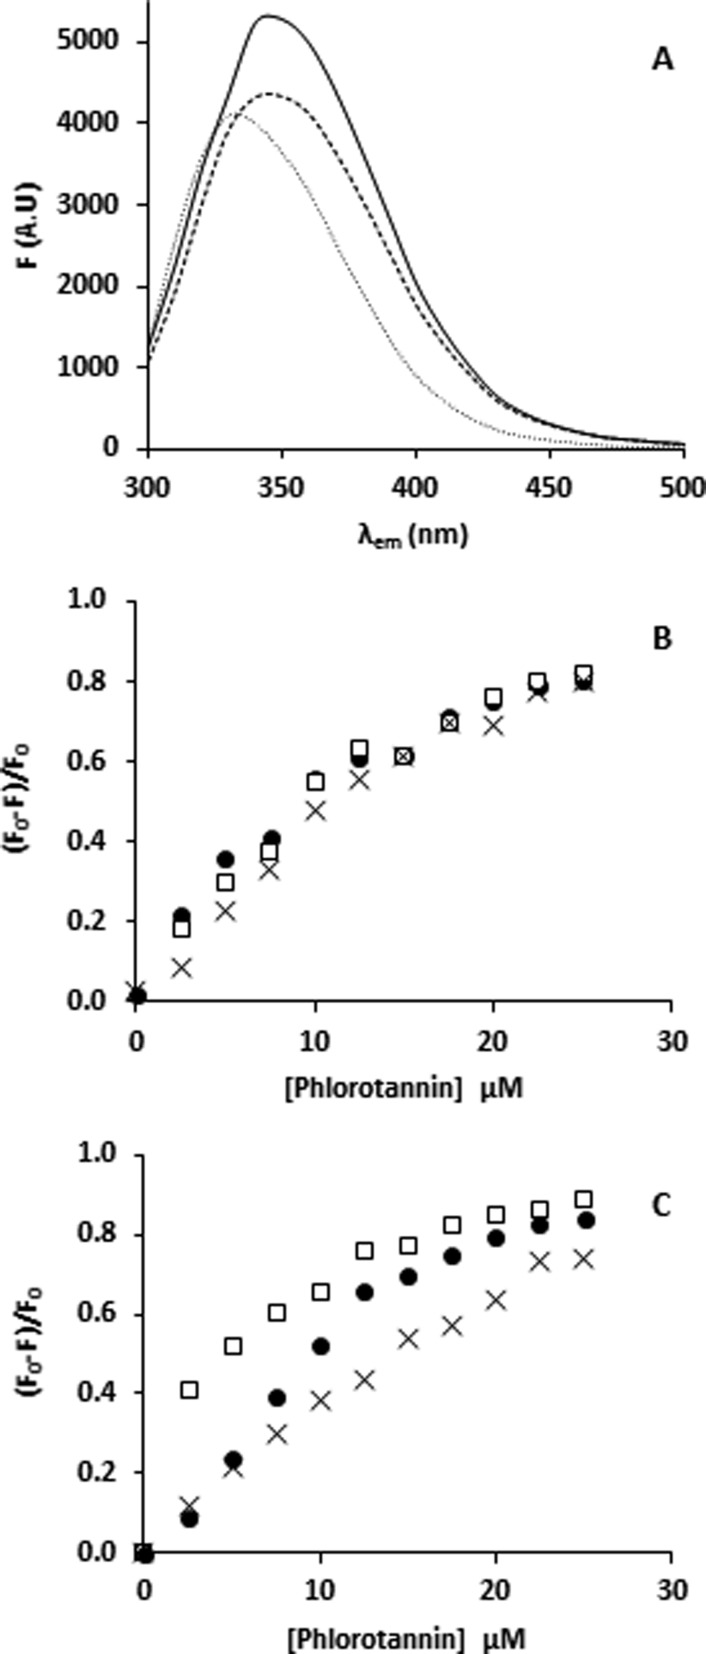 (A) Fluorescence spectra of BSA (λ ex = 280 nm) at pH 8 (−), pH 6.0 (- - -), and pH 3.0 (···). Stern–Volmer plots (λ em = 350 nm) of (B) 5 μM β-casein and (C) 5 μM BSA quenched by an increasing PhT concentration (0–25 μM, assuming an average MW = 2000 Da) at pH 8 (●), pH 6 (□), and pH 3 (×).